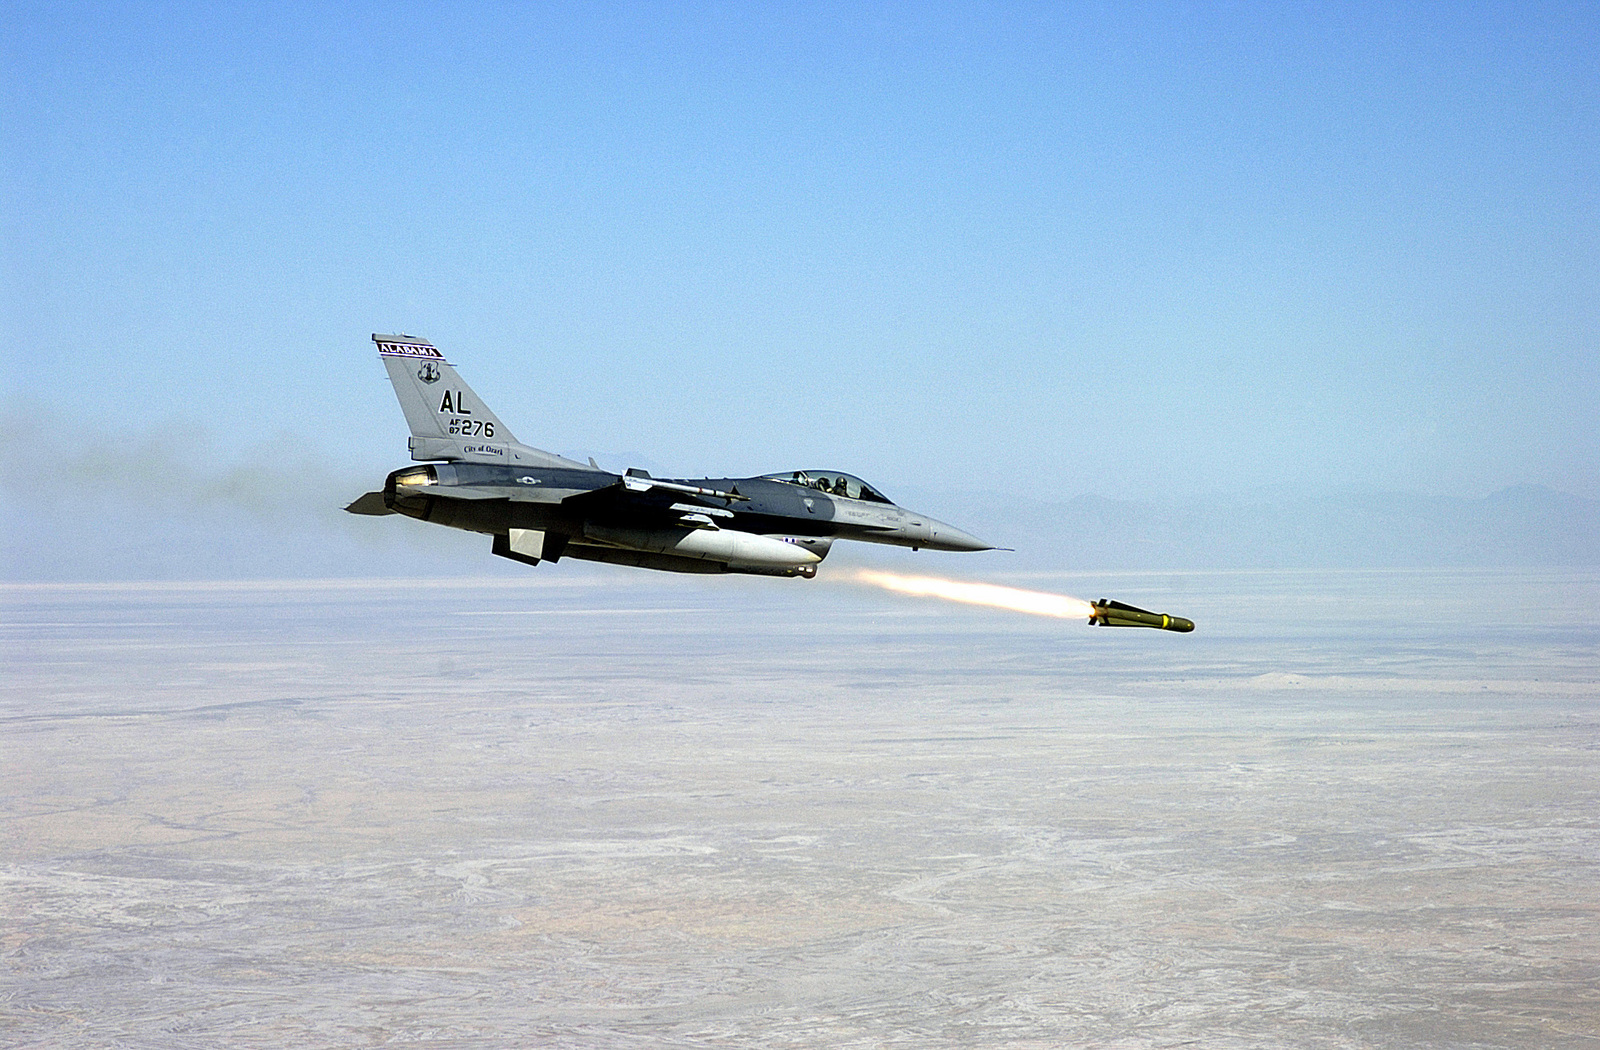 A US Air Force (USAF) F-16C Fighting Falcon aircraft